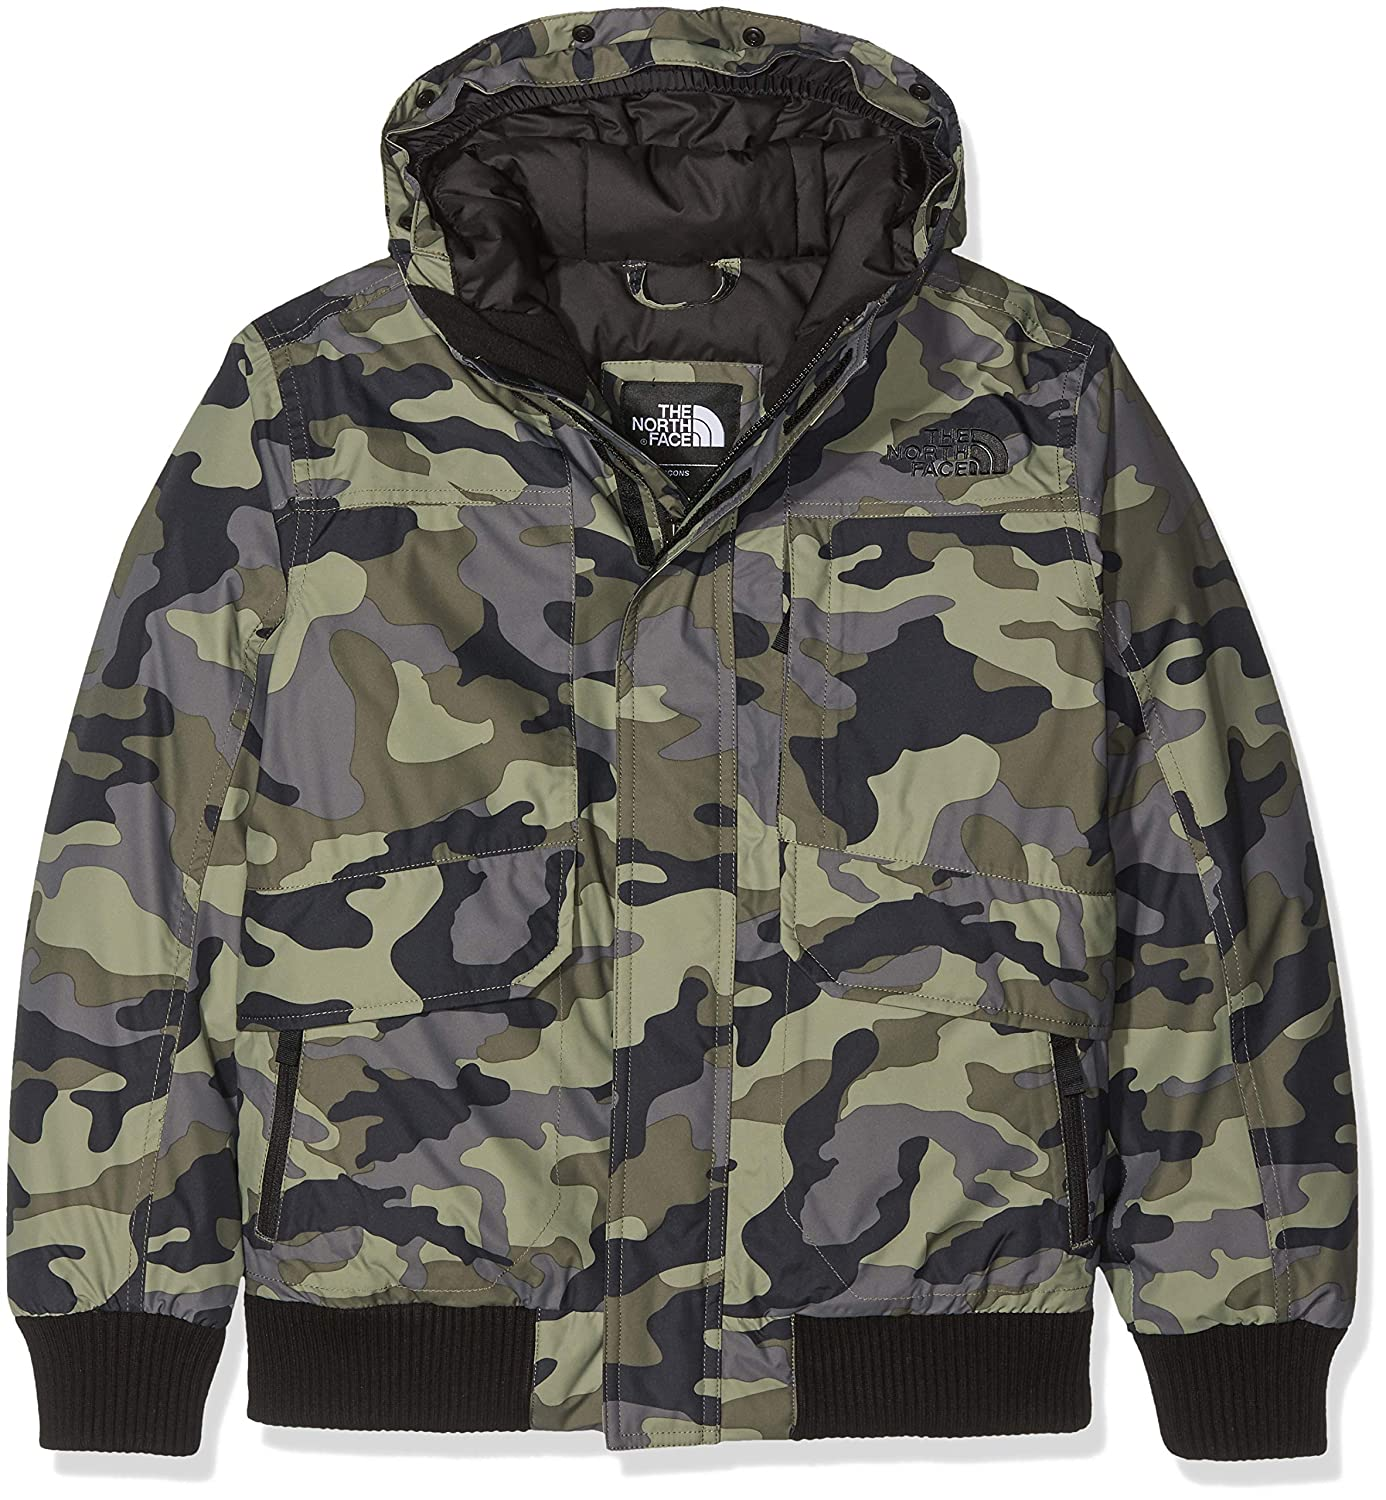 532c6eed62 Amazon.com: The North Face Kids Boy's Gotham Down Jacket (Little Kids/Big  Kids): Clothing